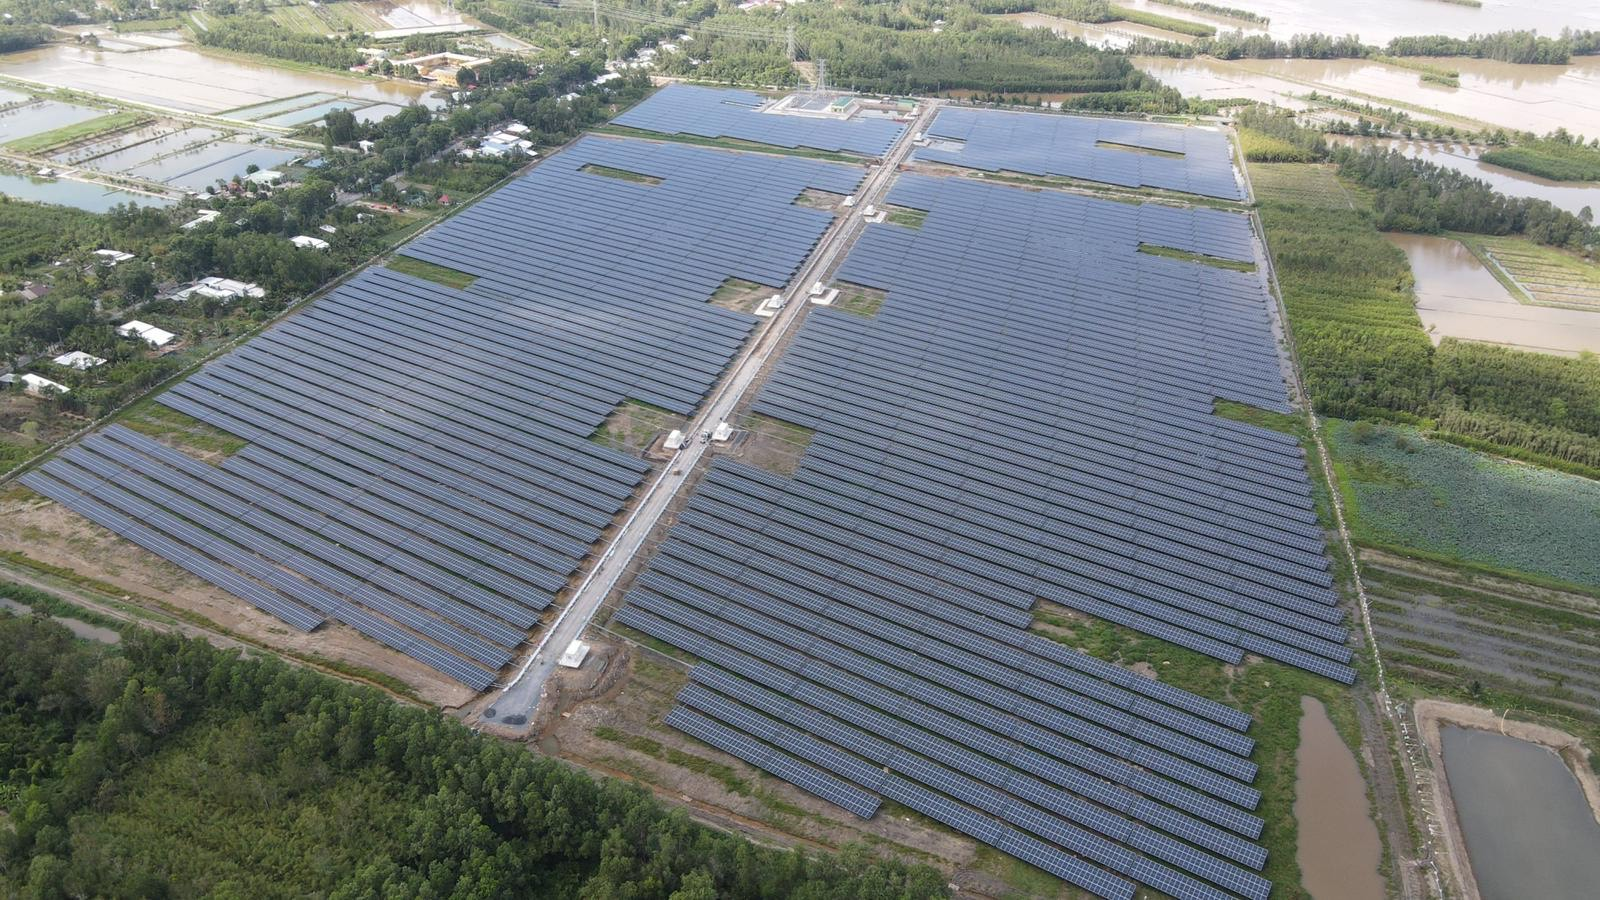 Shizen Energy Achieves Commercial Operation of The First Solar Project in Vietnam